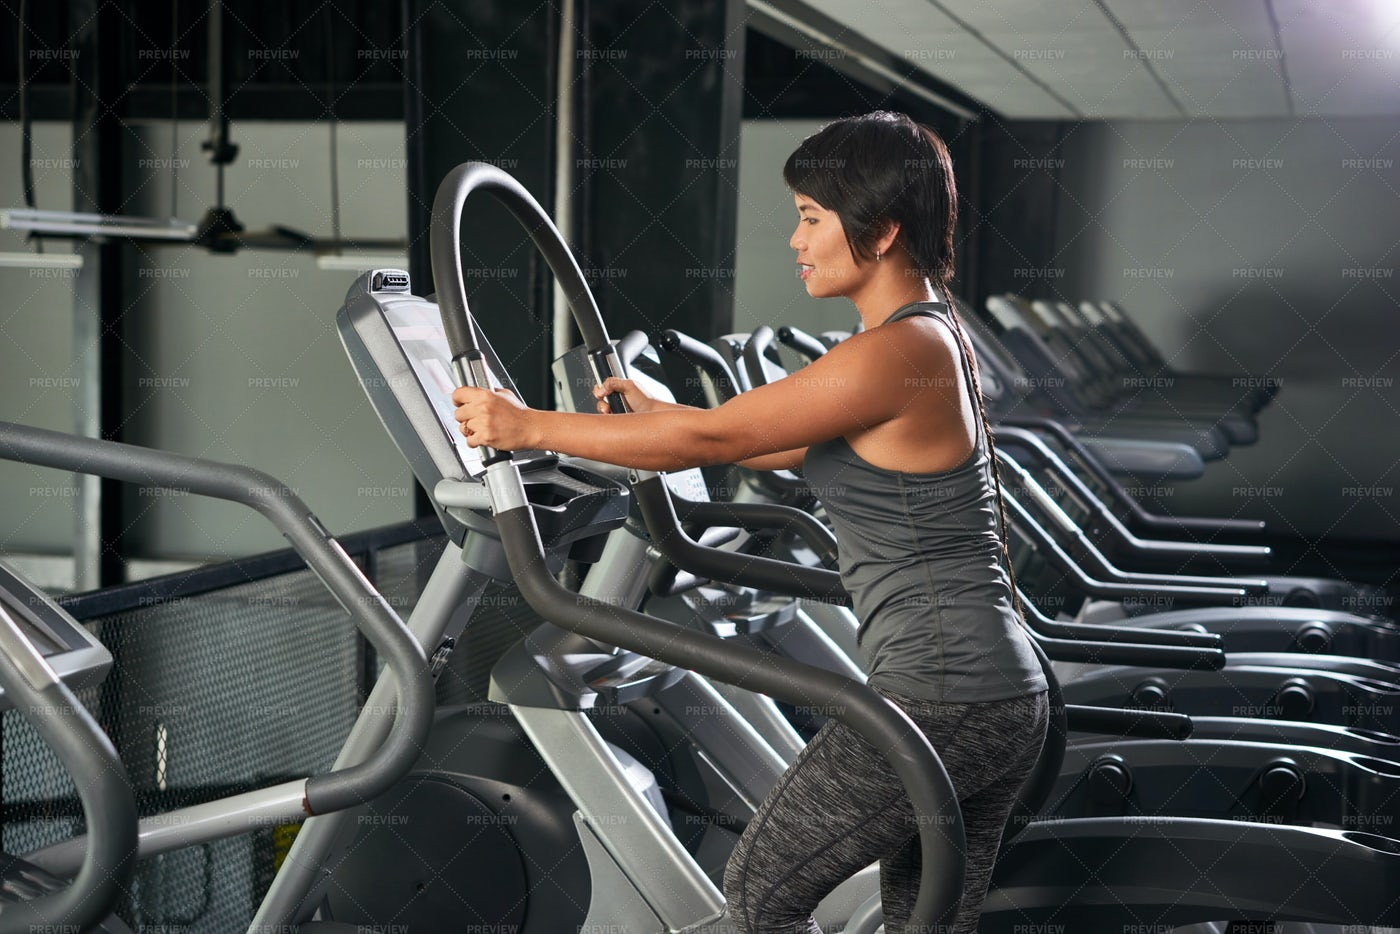 Fitness Woman In Gym: Stock Photos